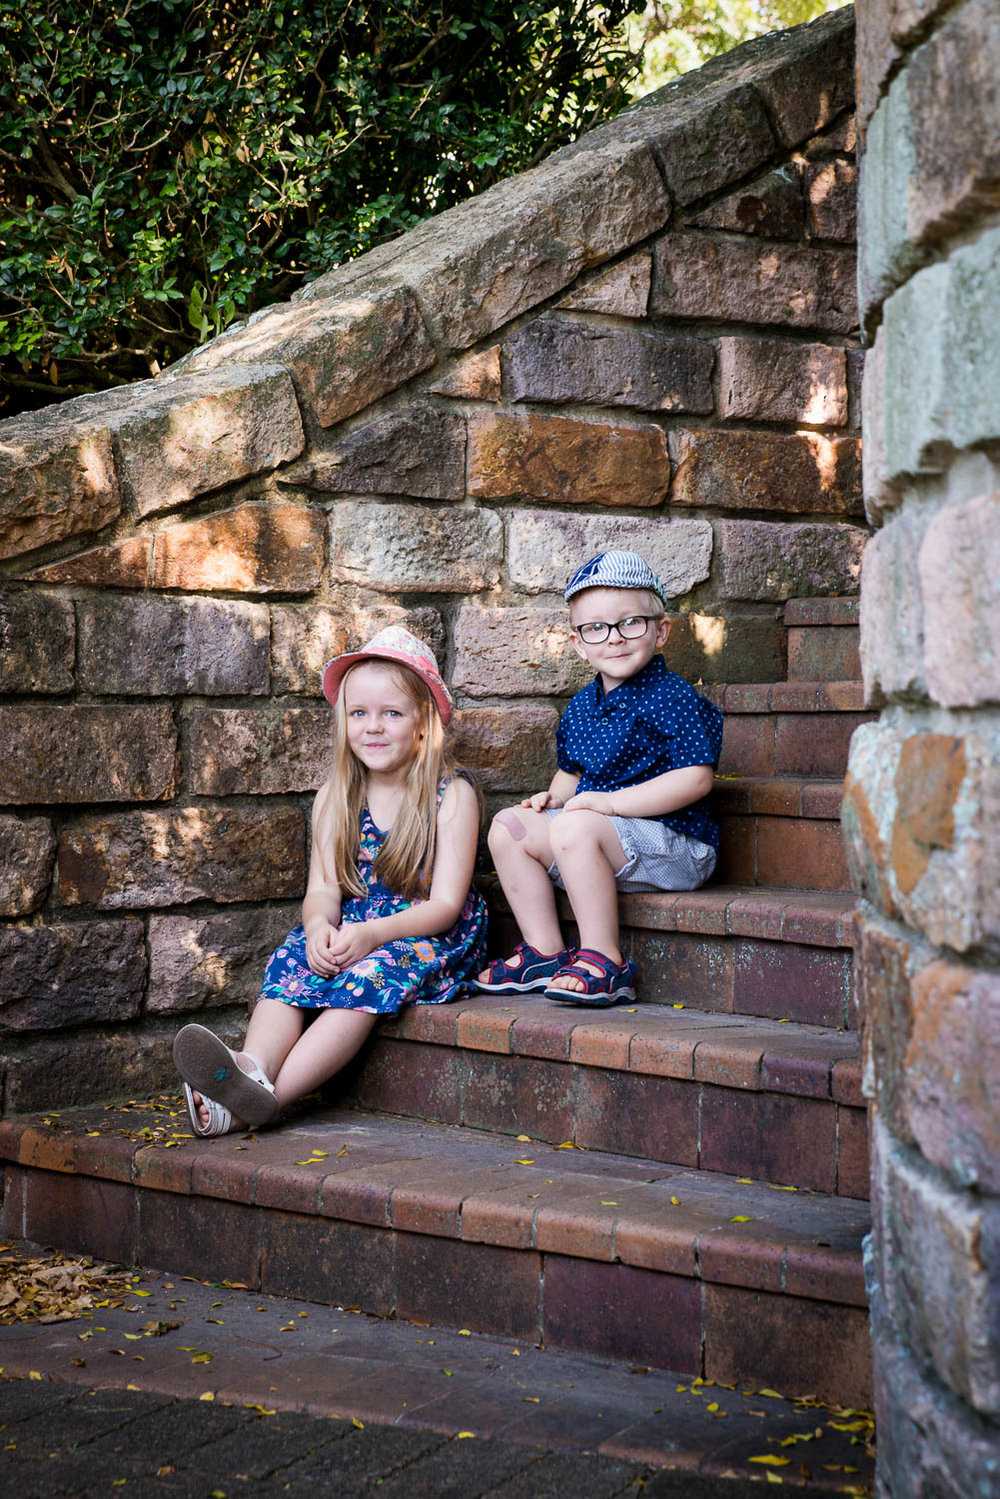 Boy and girl sitting on steps in amongst cottage garden